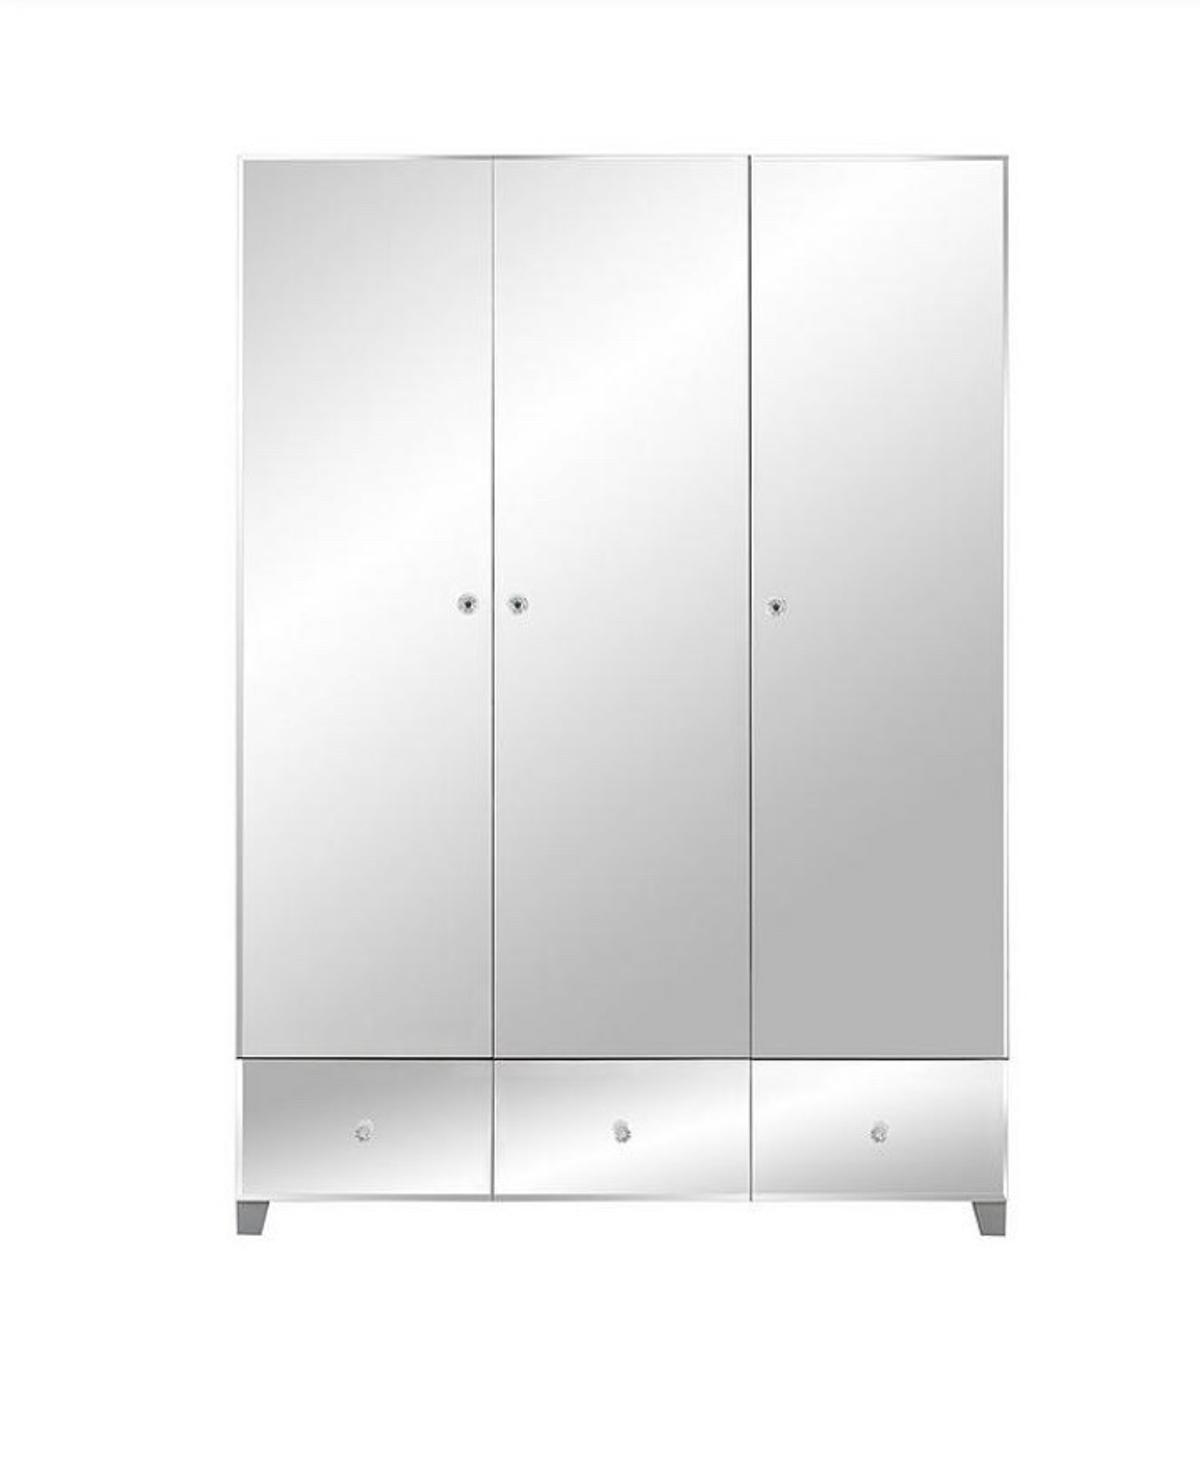 New in the box! Grab a bargain! BELLAGIO 3 Door 3 Drawers Mirrored wardrobe Just as fashionable as the outfits you'll store in it, the doors and drawer fronts are decked in shiny bevelled mirrors that add a fabulous sense of light and depth to your space. Sparkly jewel-effect handles add a glam garnish, and the frame is available in white or grey colourways to match your room. Dimensions: Height 185, Width 129, Depth 55 cm  It worth £379 at littlewoods website.  Only £295 free delivery